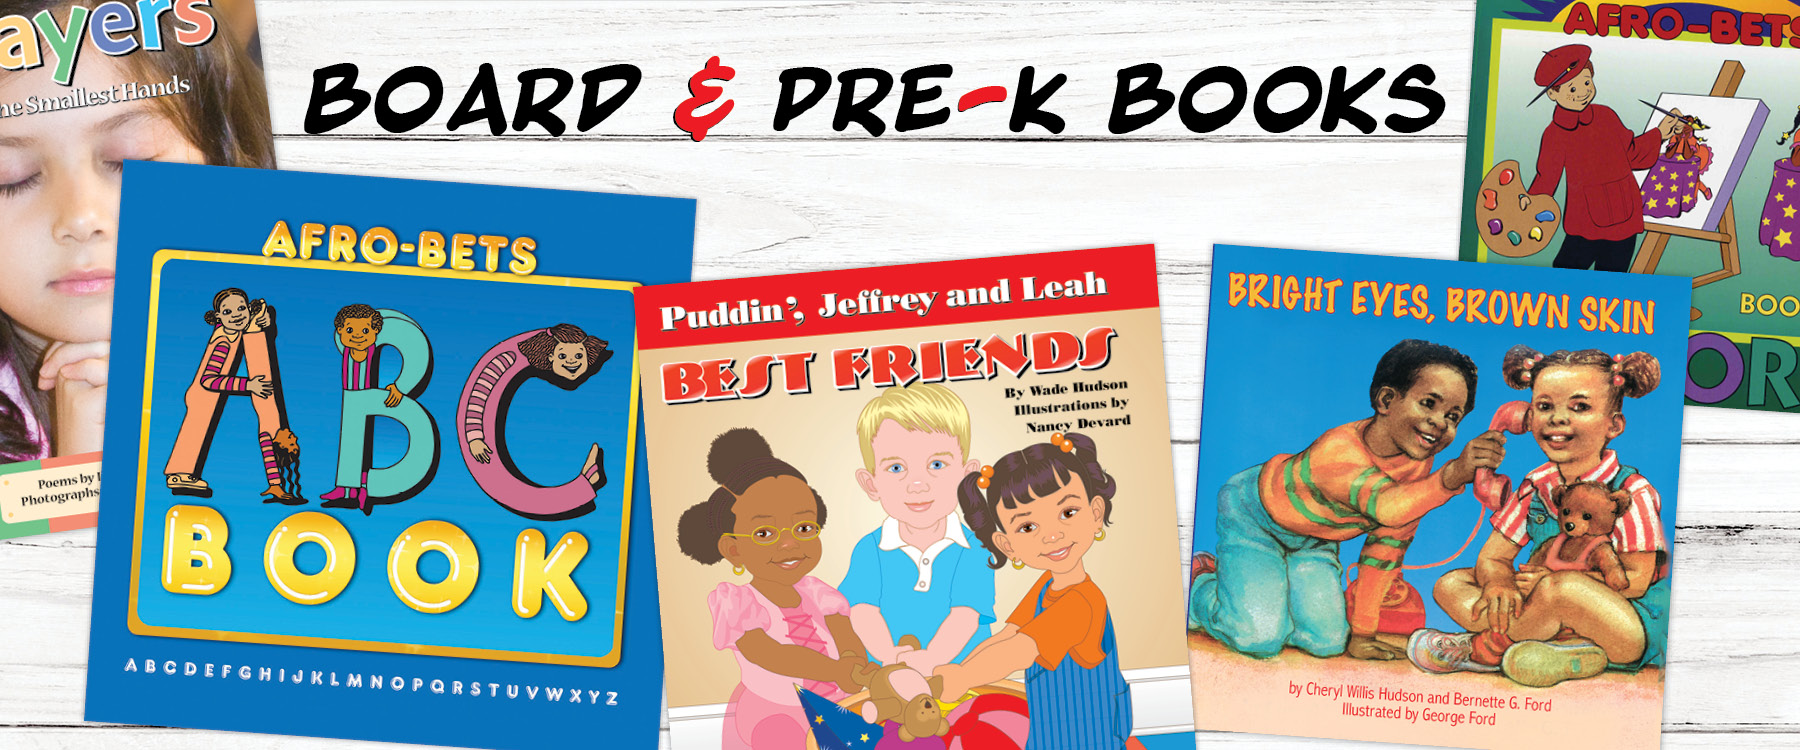 banners-just-us-books-board-pre-k-books.jpg